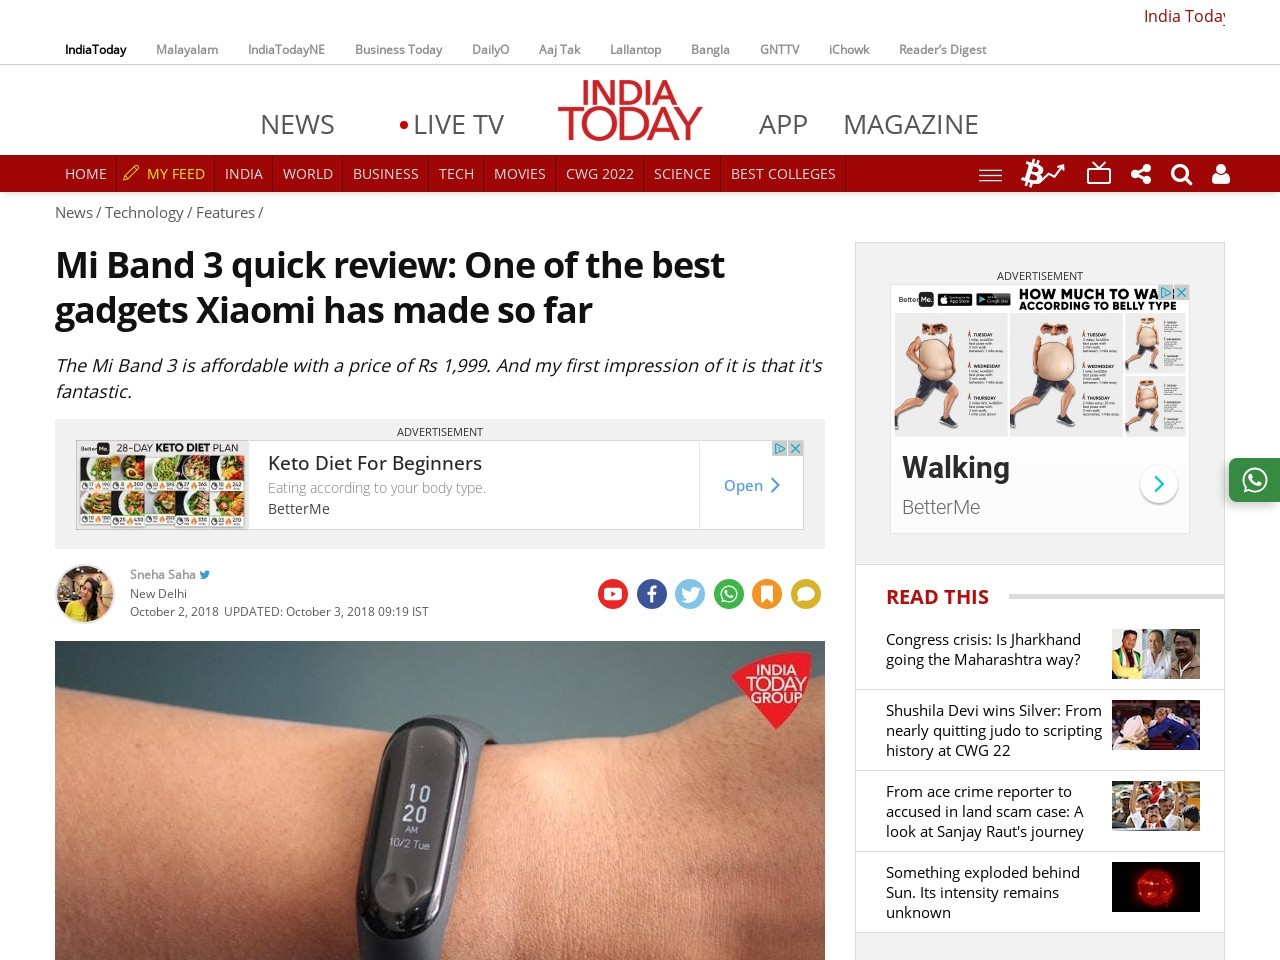 Mi Band 3 quick evaluate: One of the best gadgets Xiaomi has made so far…